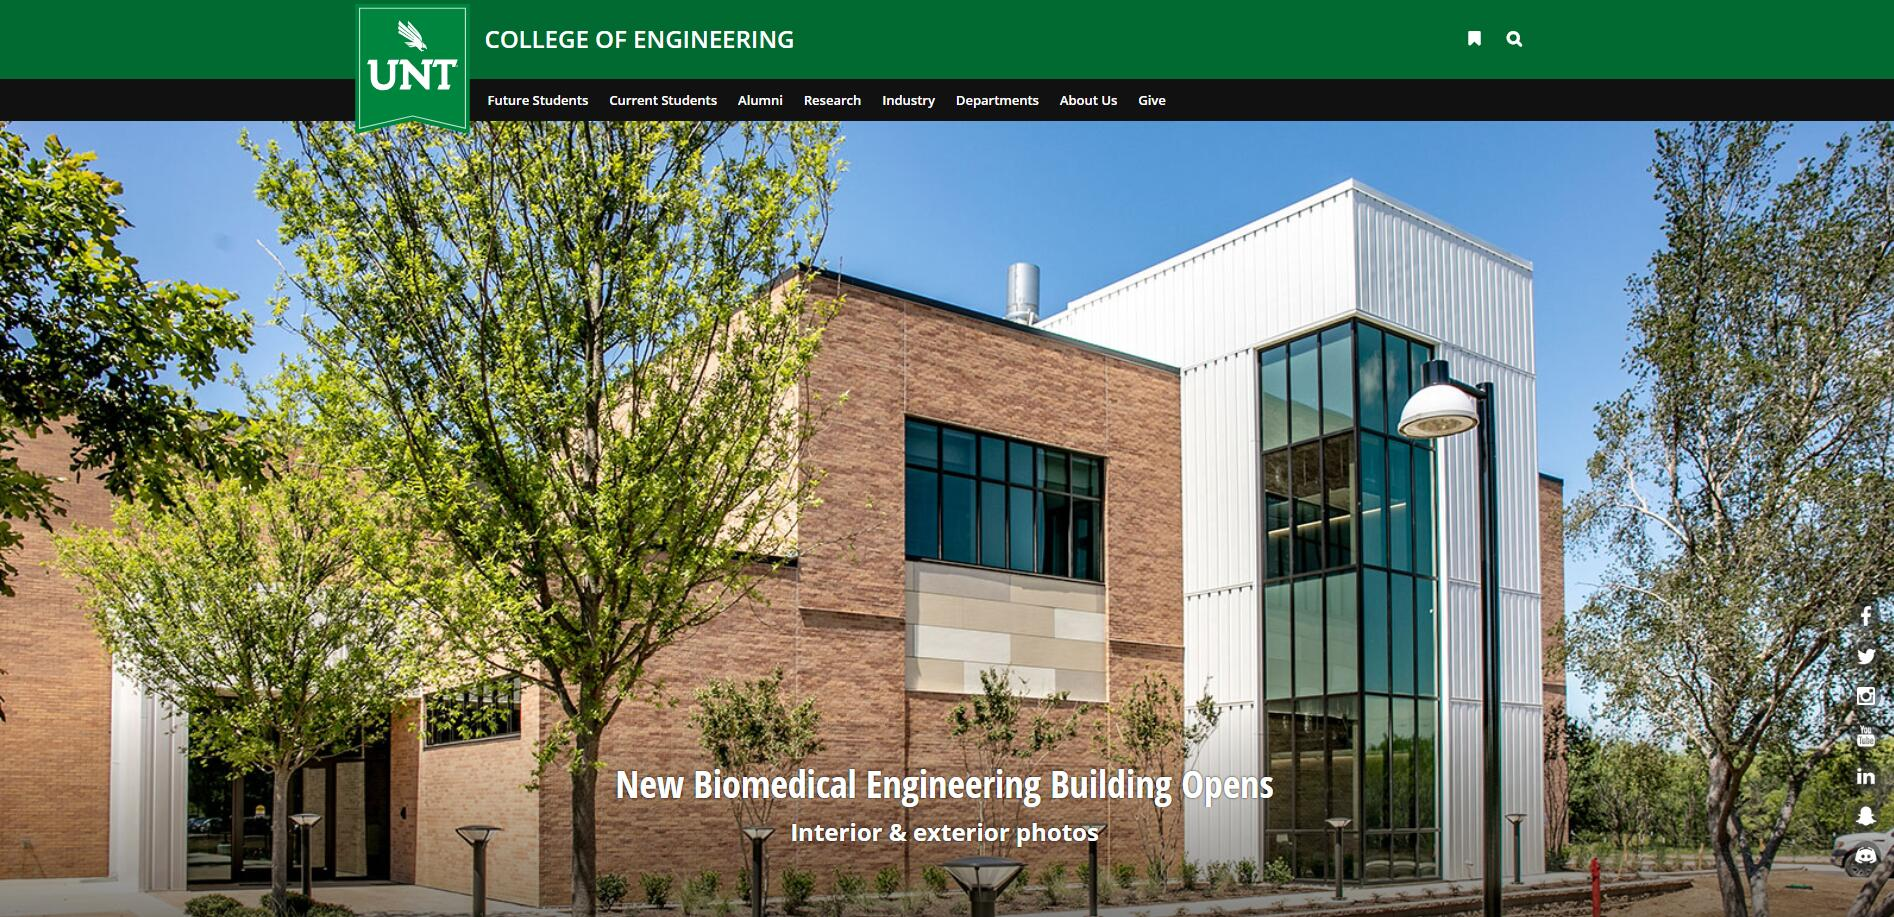 The College of Engineering at University of North Texas